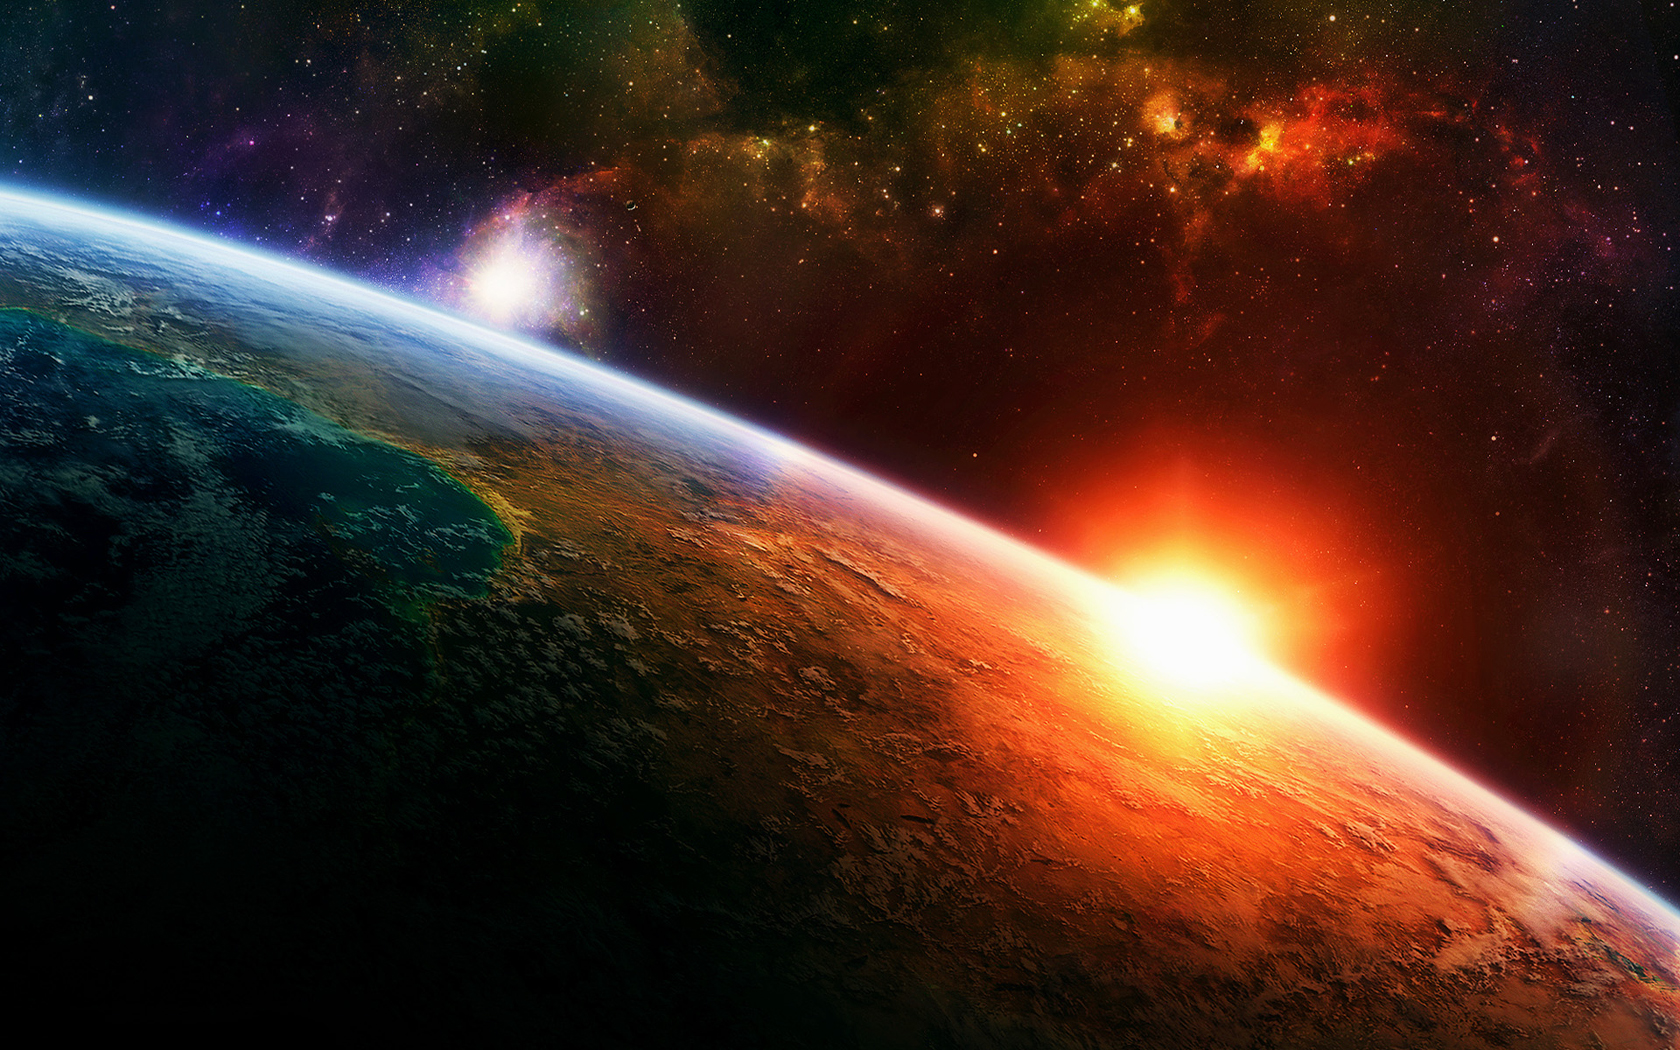 Marvelous Planet Earth and Space Wallpapers   Hongkiat 1680x1050